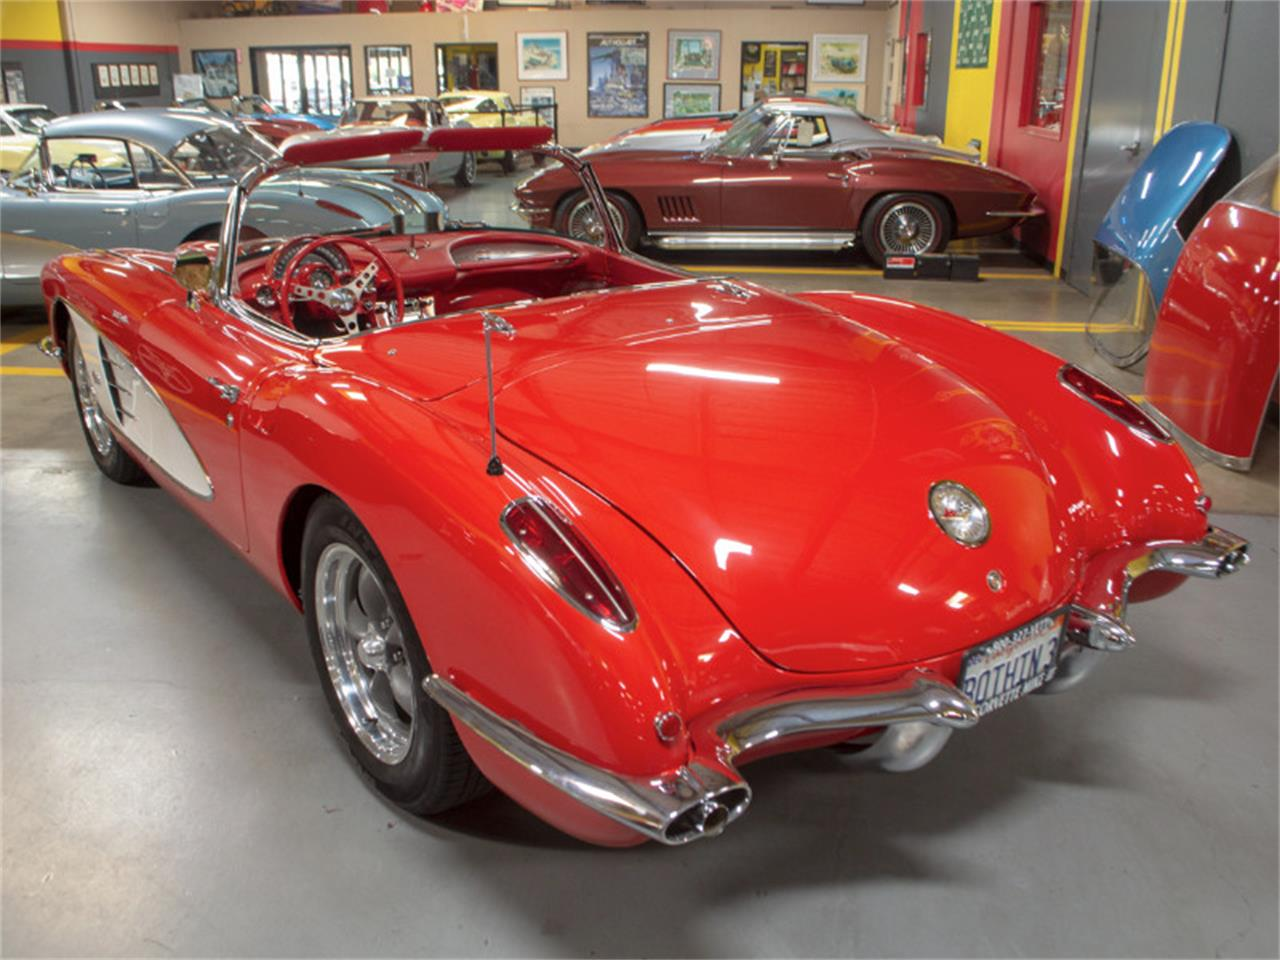 Large Picture of 1960 Corvette located in Anaheim California - $129,900.00 - OXRY